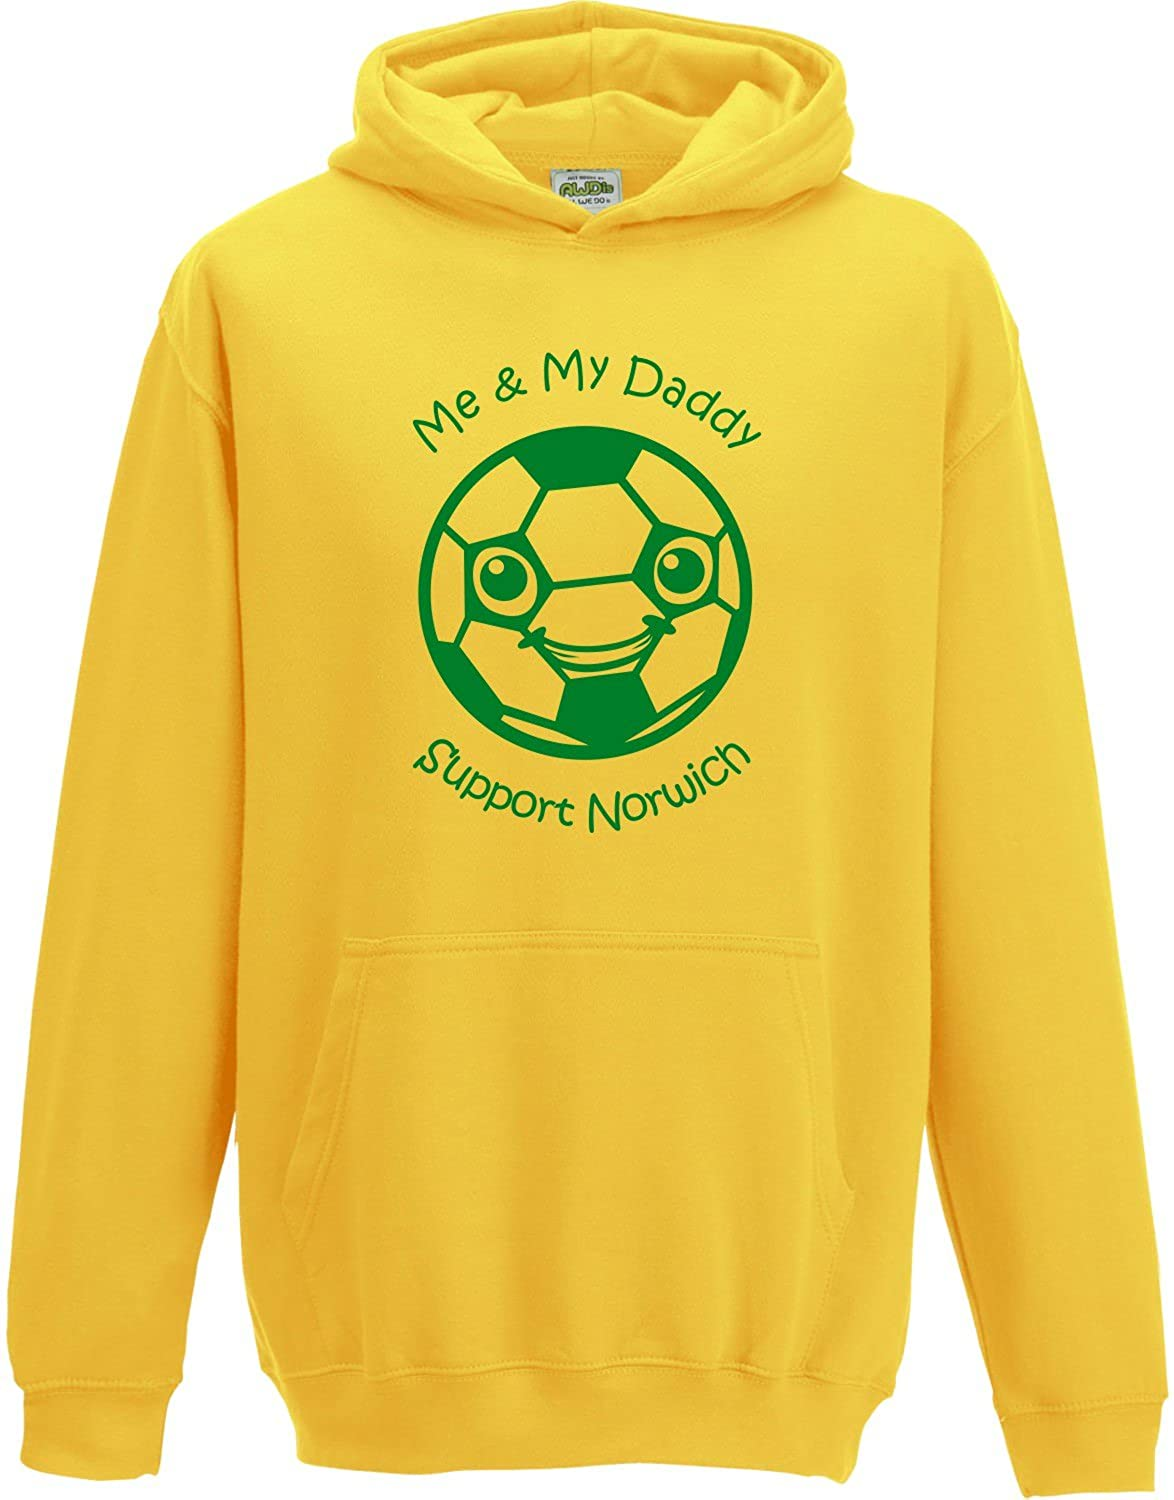 Hat-Trick Designs Norwich City Football Baby/Kids/Childrens Hoodie Sweatshirt-Yellow-Me & My-Unisex Gift